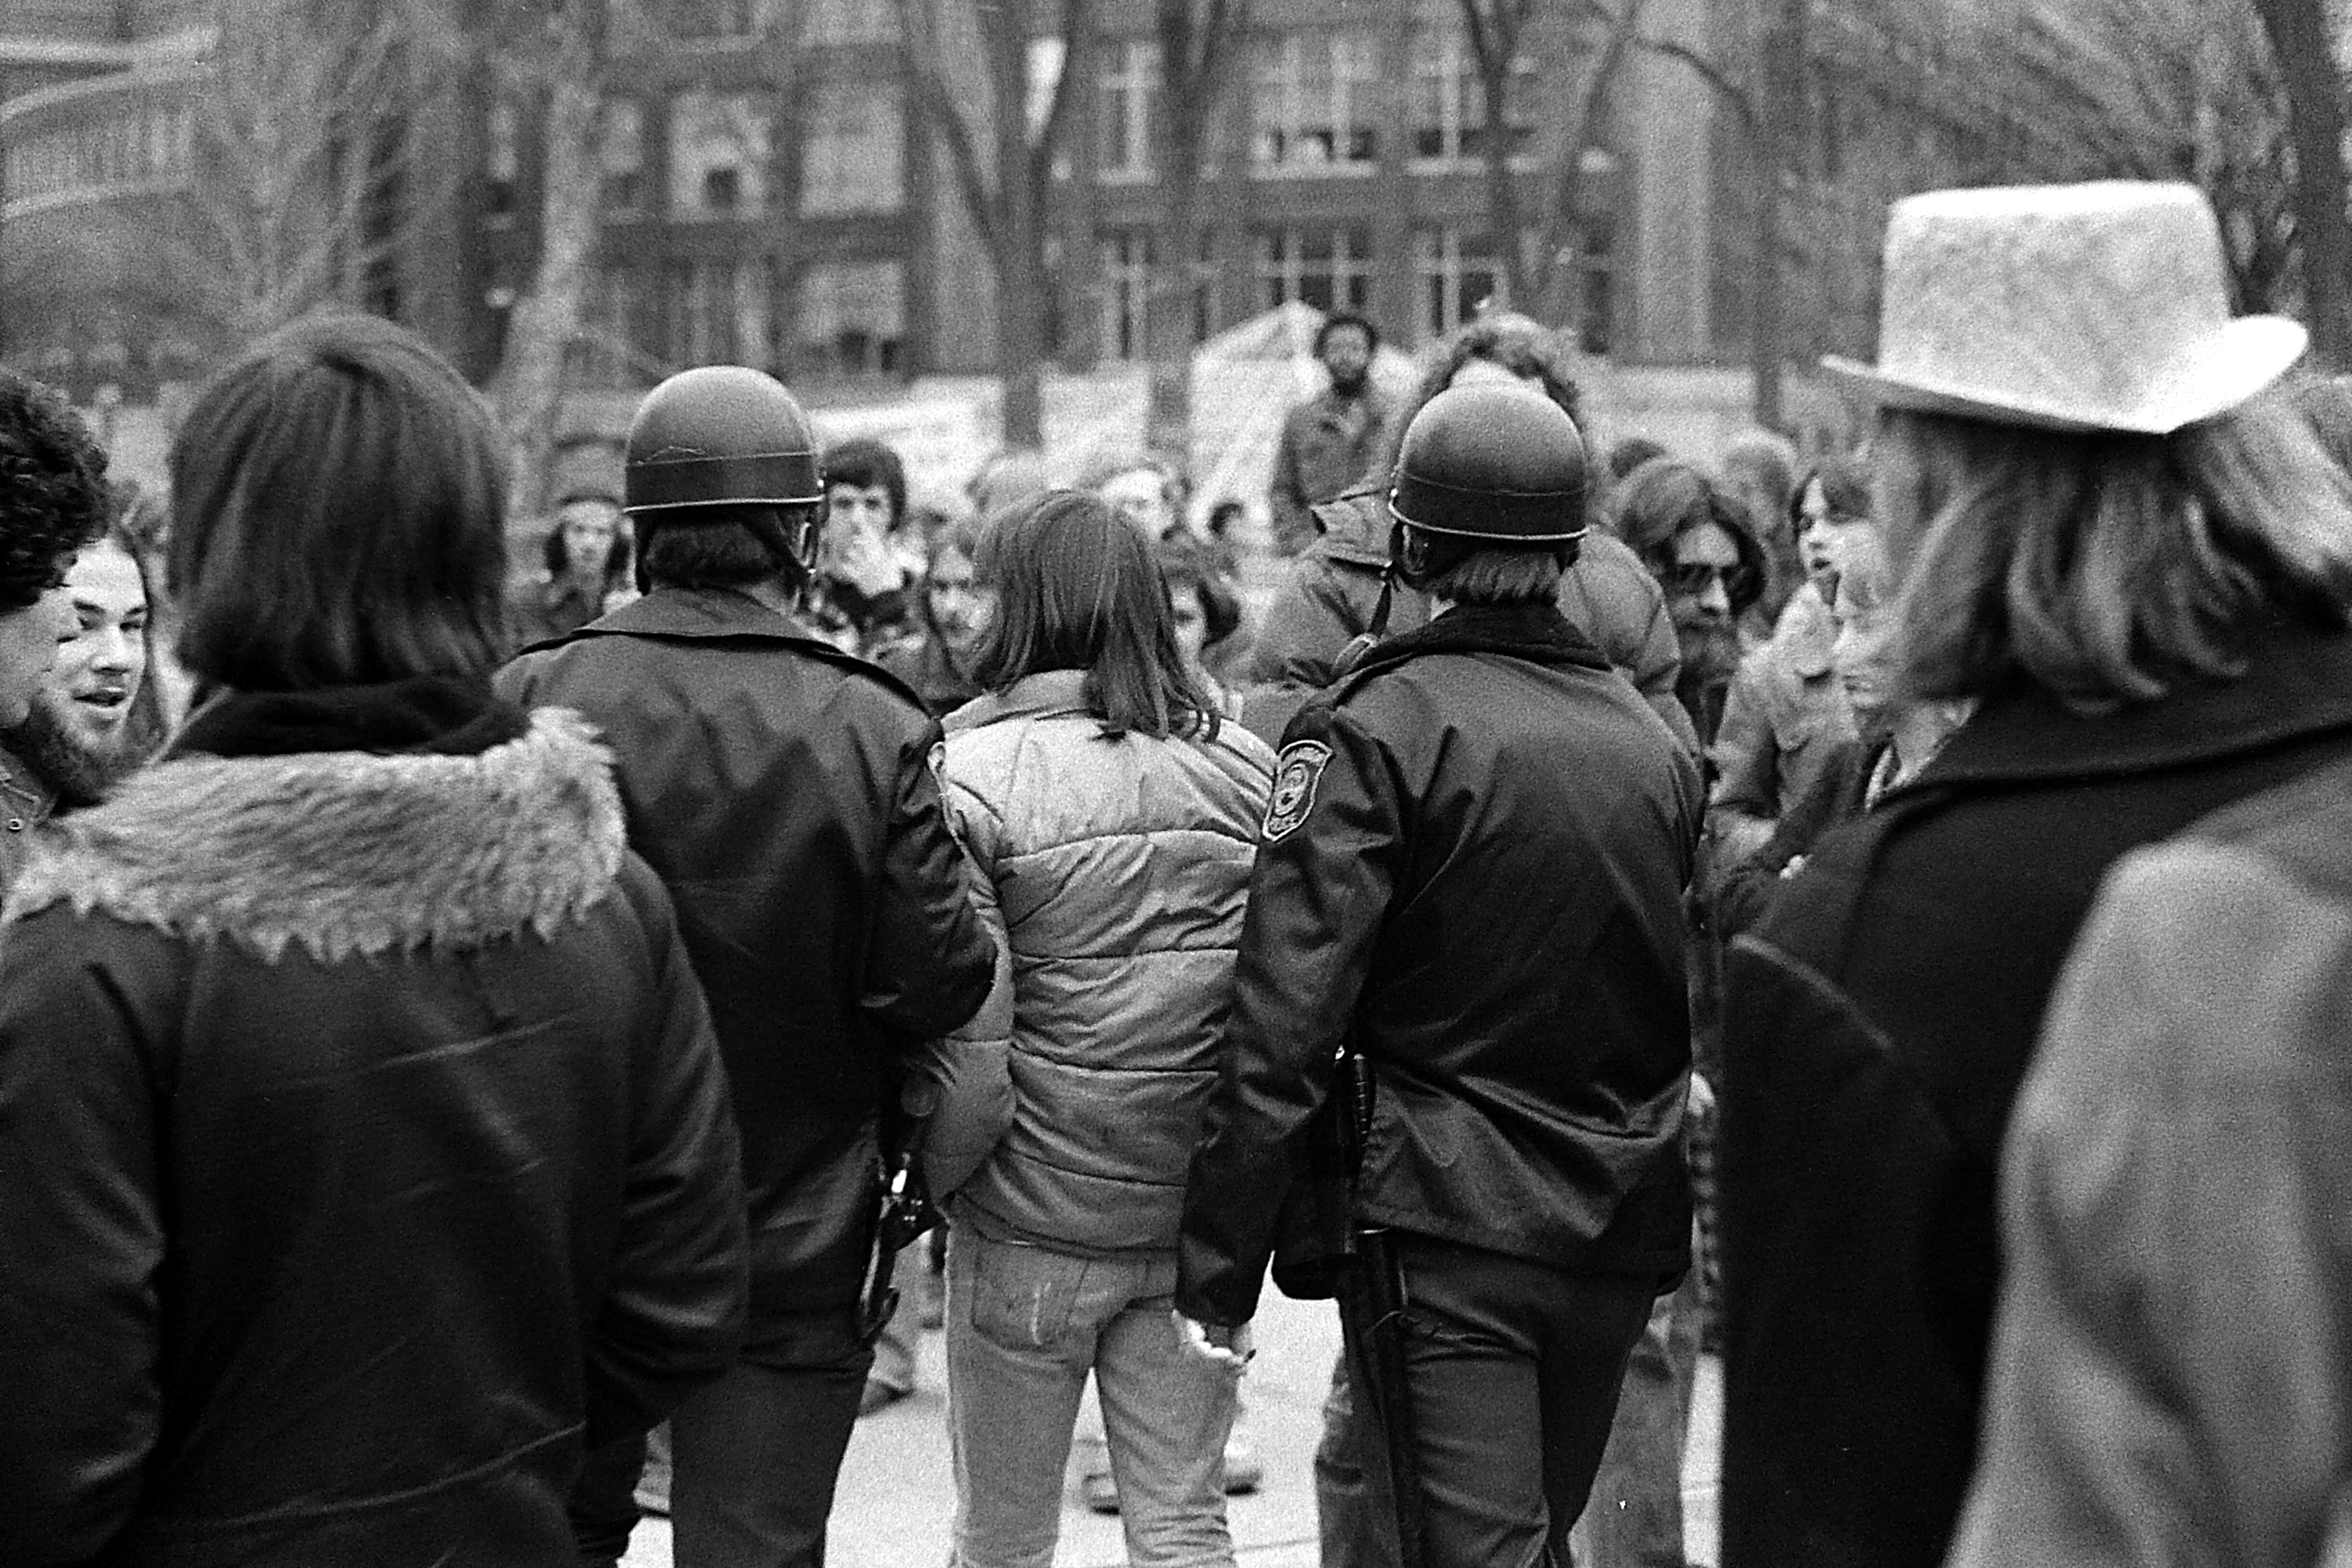 Hash Bash, April 1978 image